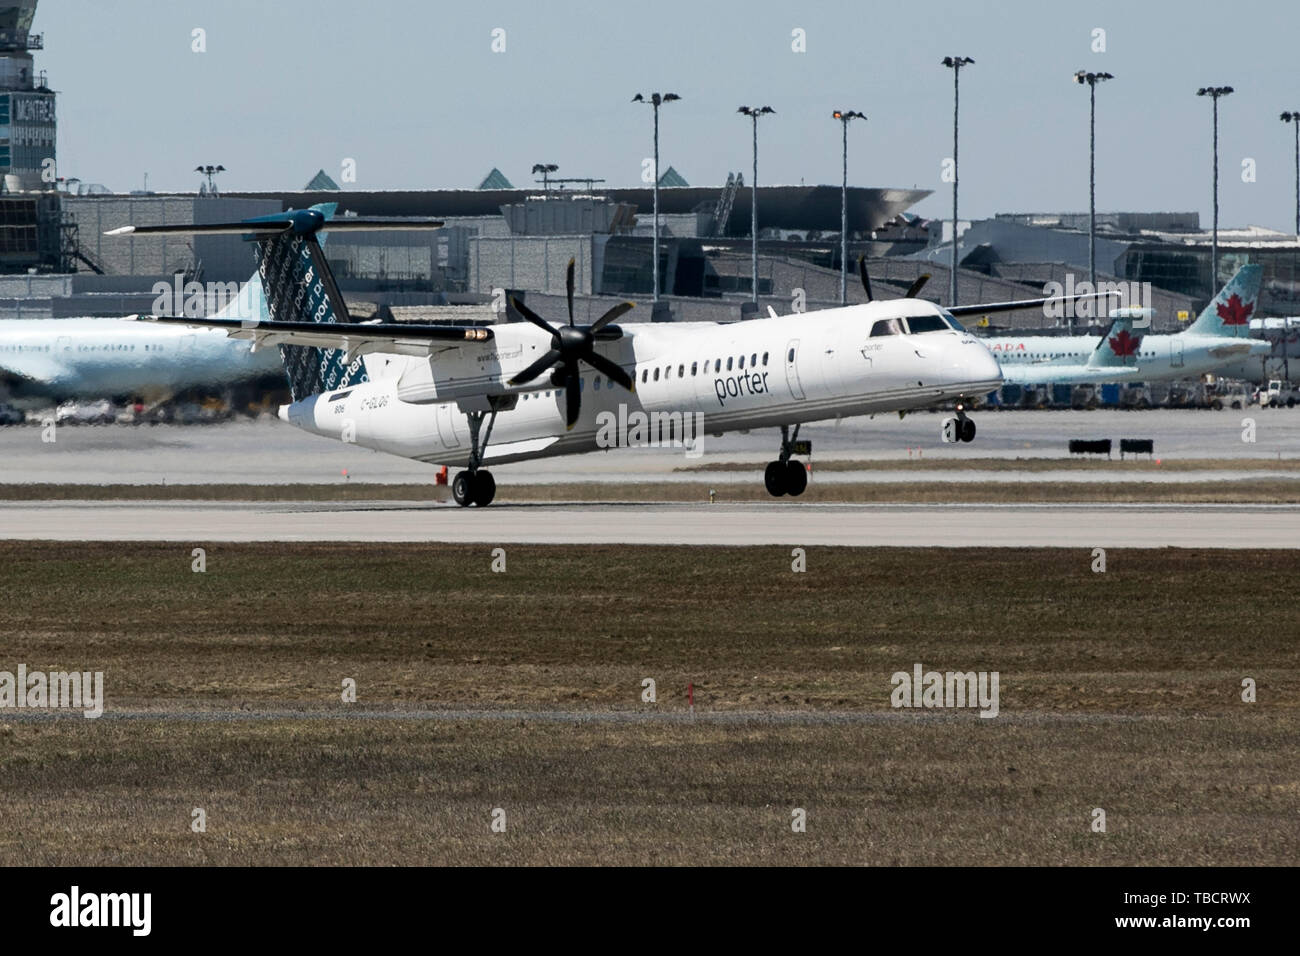 A Porter Airlines Bombardier Dash 8 airplane is seen landing at Montréal-Pierre Elliott Trudeau International Airport in Montreal, Quebec, Canada, on  - Stock Image